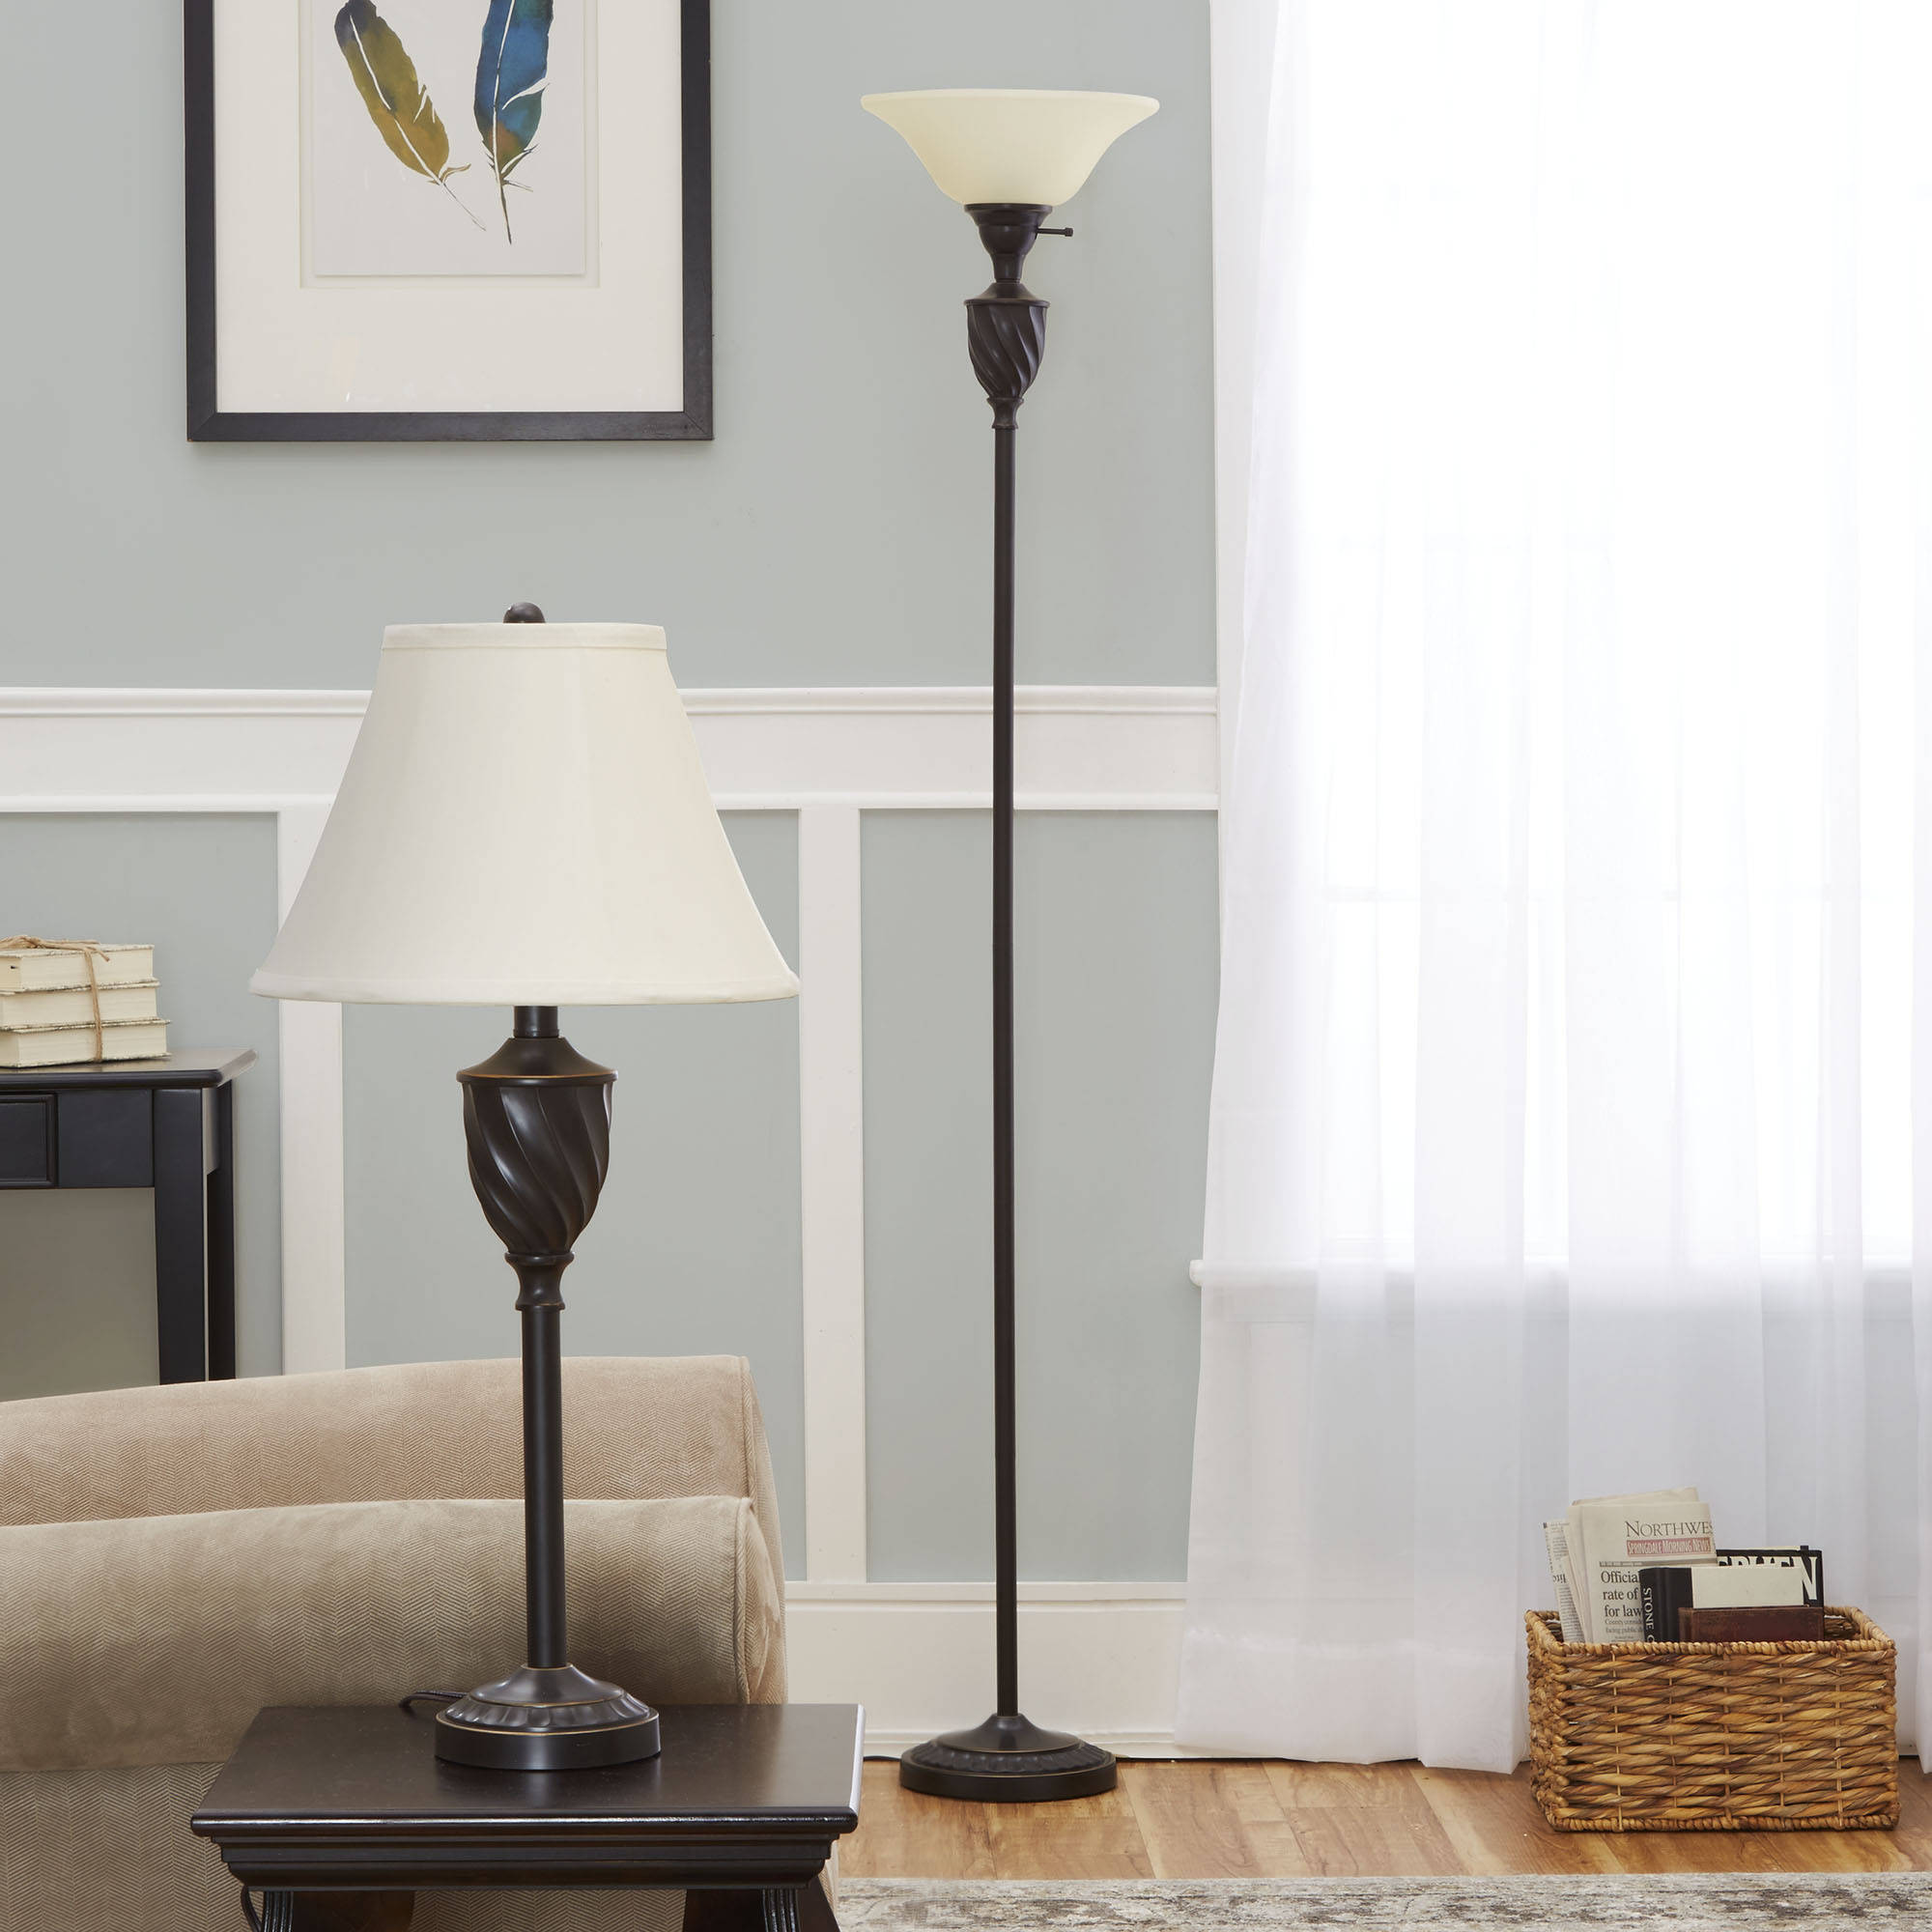 Mainstays table and floor lamp set oil rubbed bronze finish mainstays table and floor lamp set oil rubbed bronze finish walmart mozeypictures Images